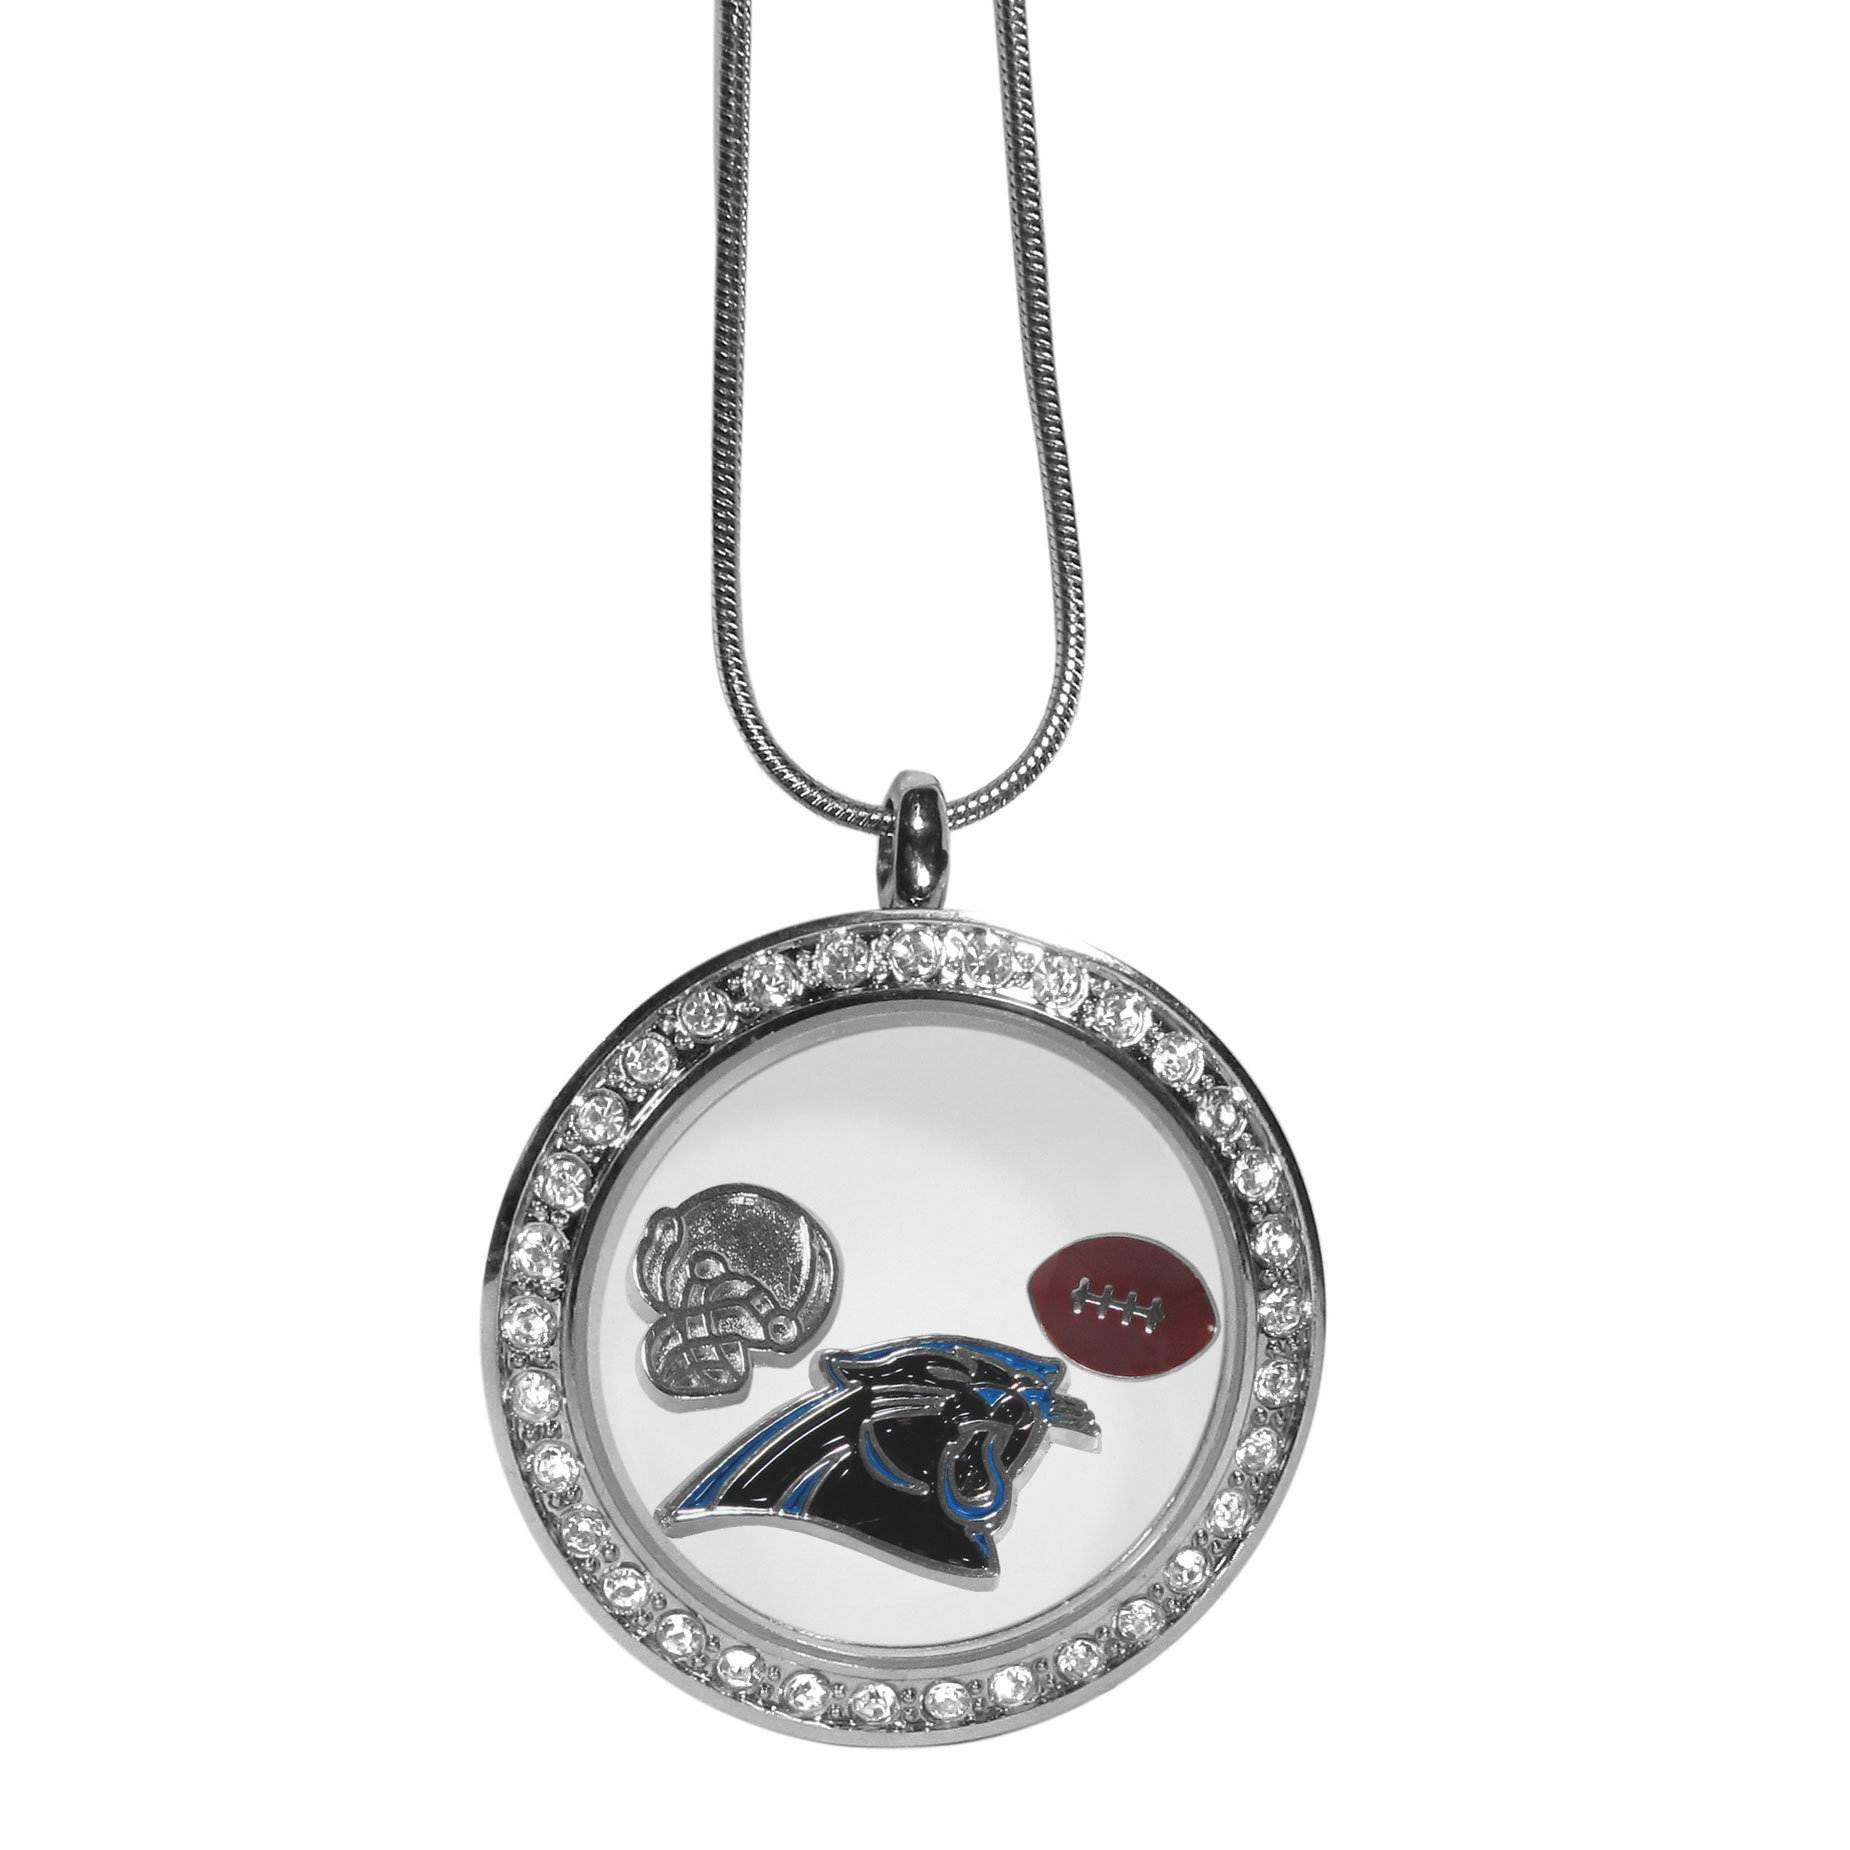 Carolina Panthers Locket Necklace - We have taken the classic floating charm locket and combined with licensed sports charms to create a must have fan necklace. The necklace comes with 3 charms; 1 Carolina Panthers charm, one football charm and one helmet charm. The charms float in a beautiful locket that has a strong magnetic closure with a rhinestone border. The locket comes on an 18 inch snake chain with 2 inch extender.